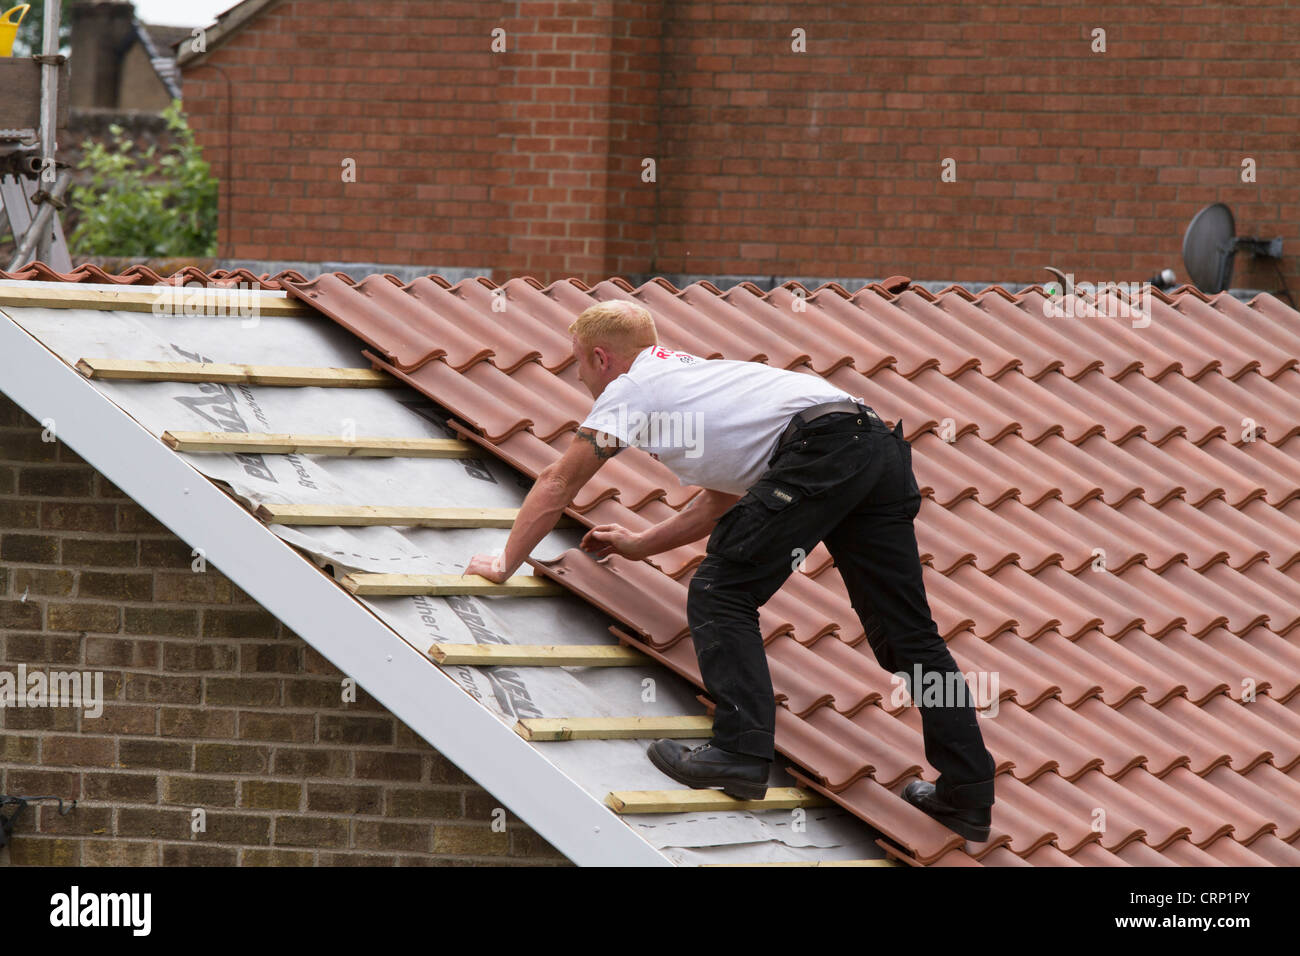 Men Laying New Roof Tiles Stock Photo 49042195 Alamy